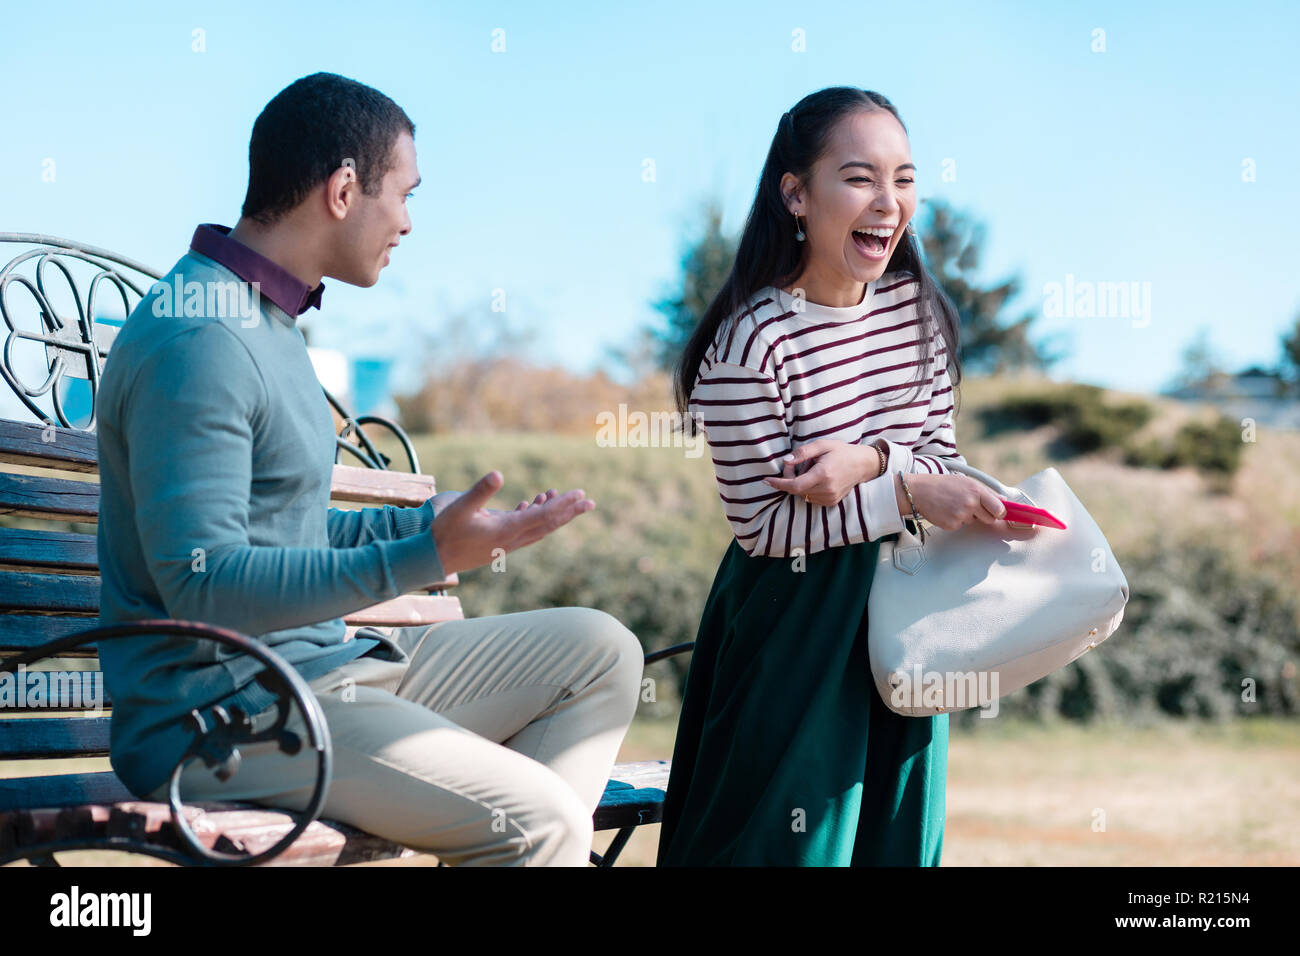 Joyful Asian female person laughing at her partner - Stock Image